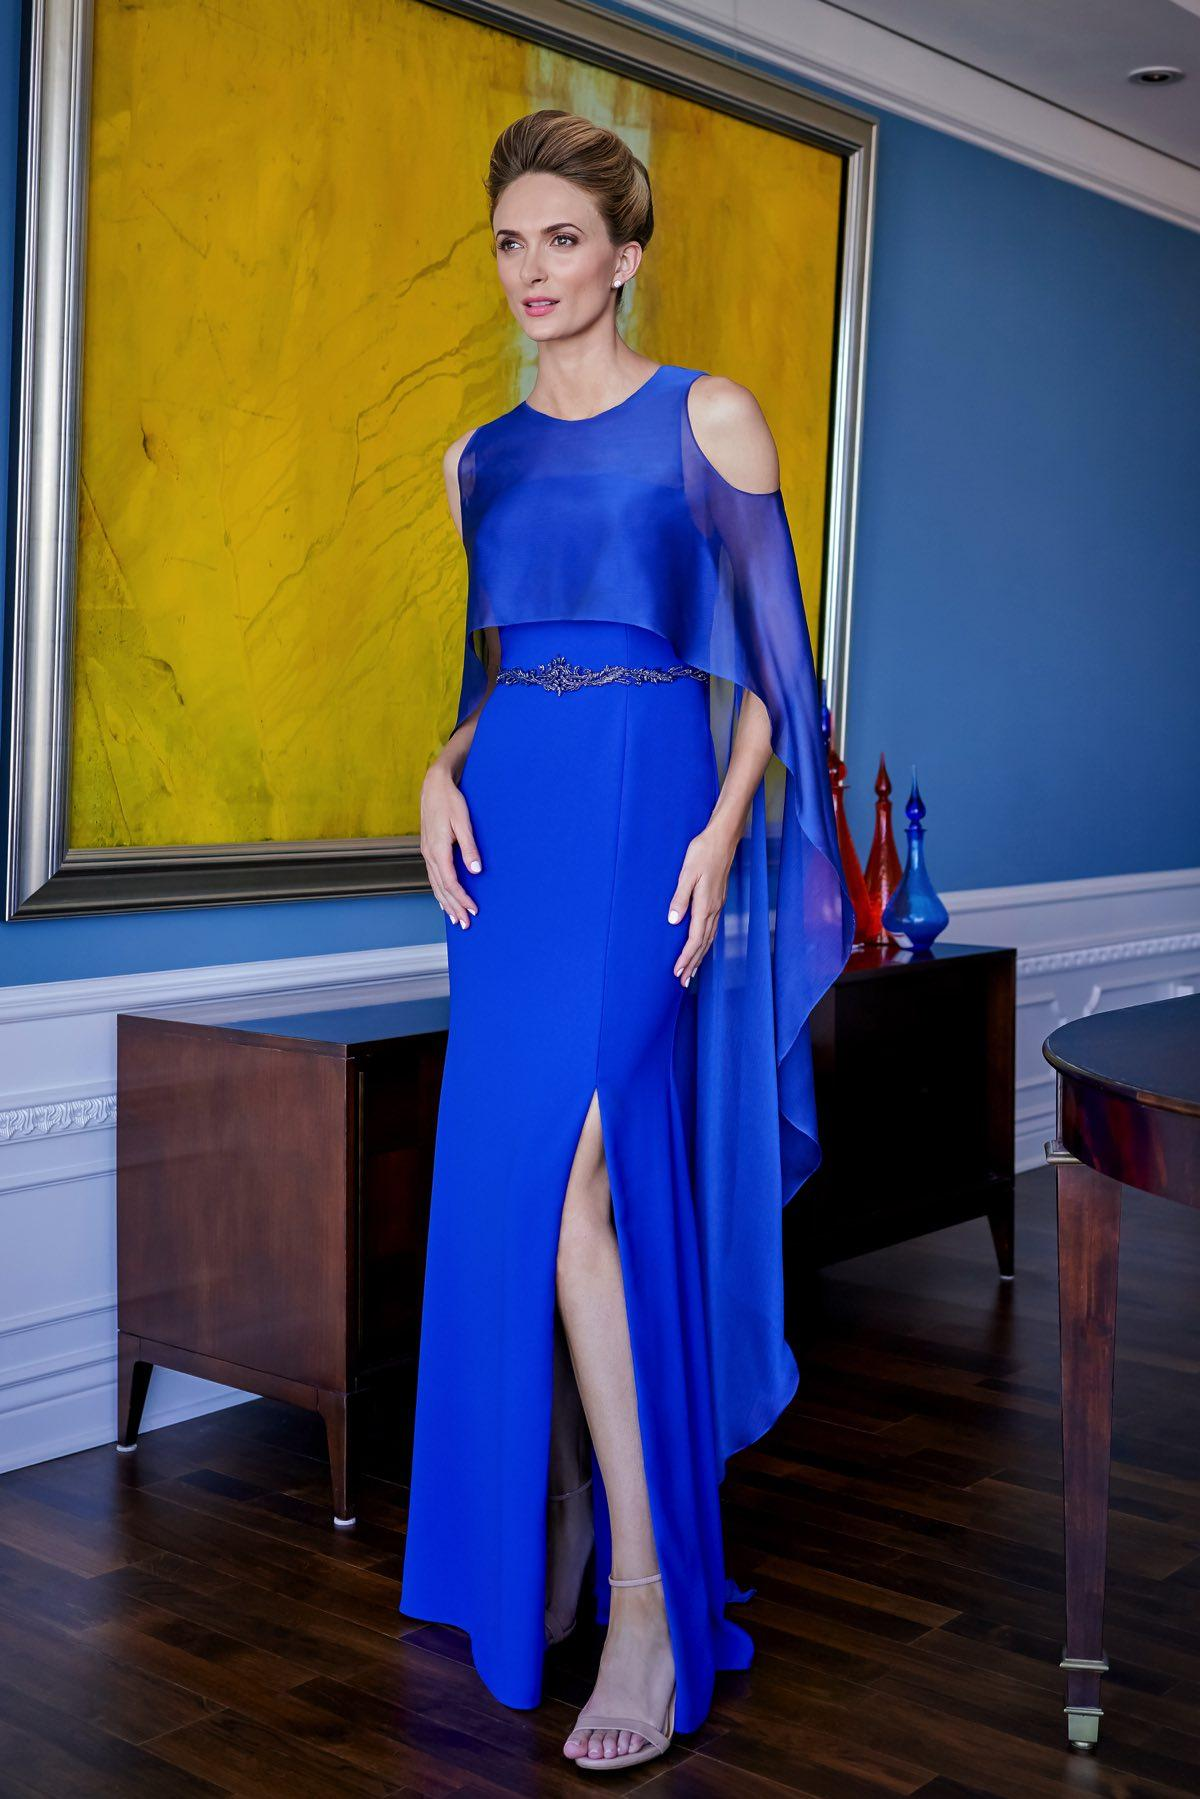 Royal Blue Mother Of The Bride Dresses With Wrap A Line Beaded Belt Chic Wedding Guest Dress High Side Split Formal Mother Gowns